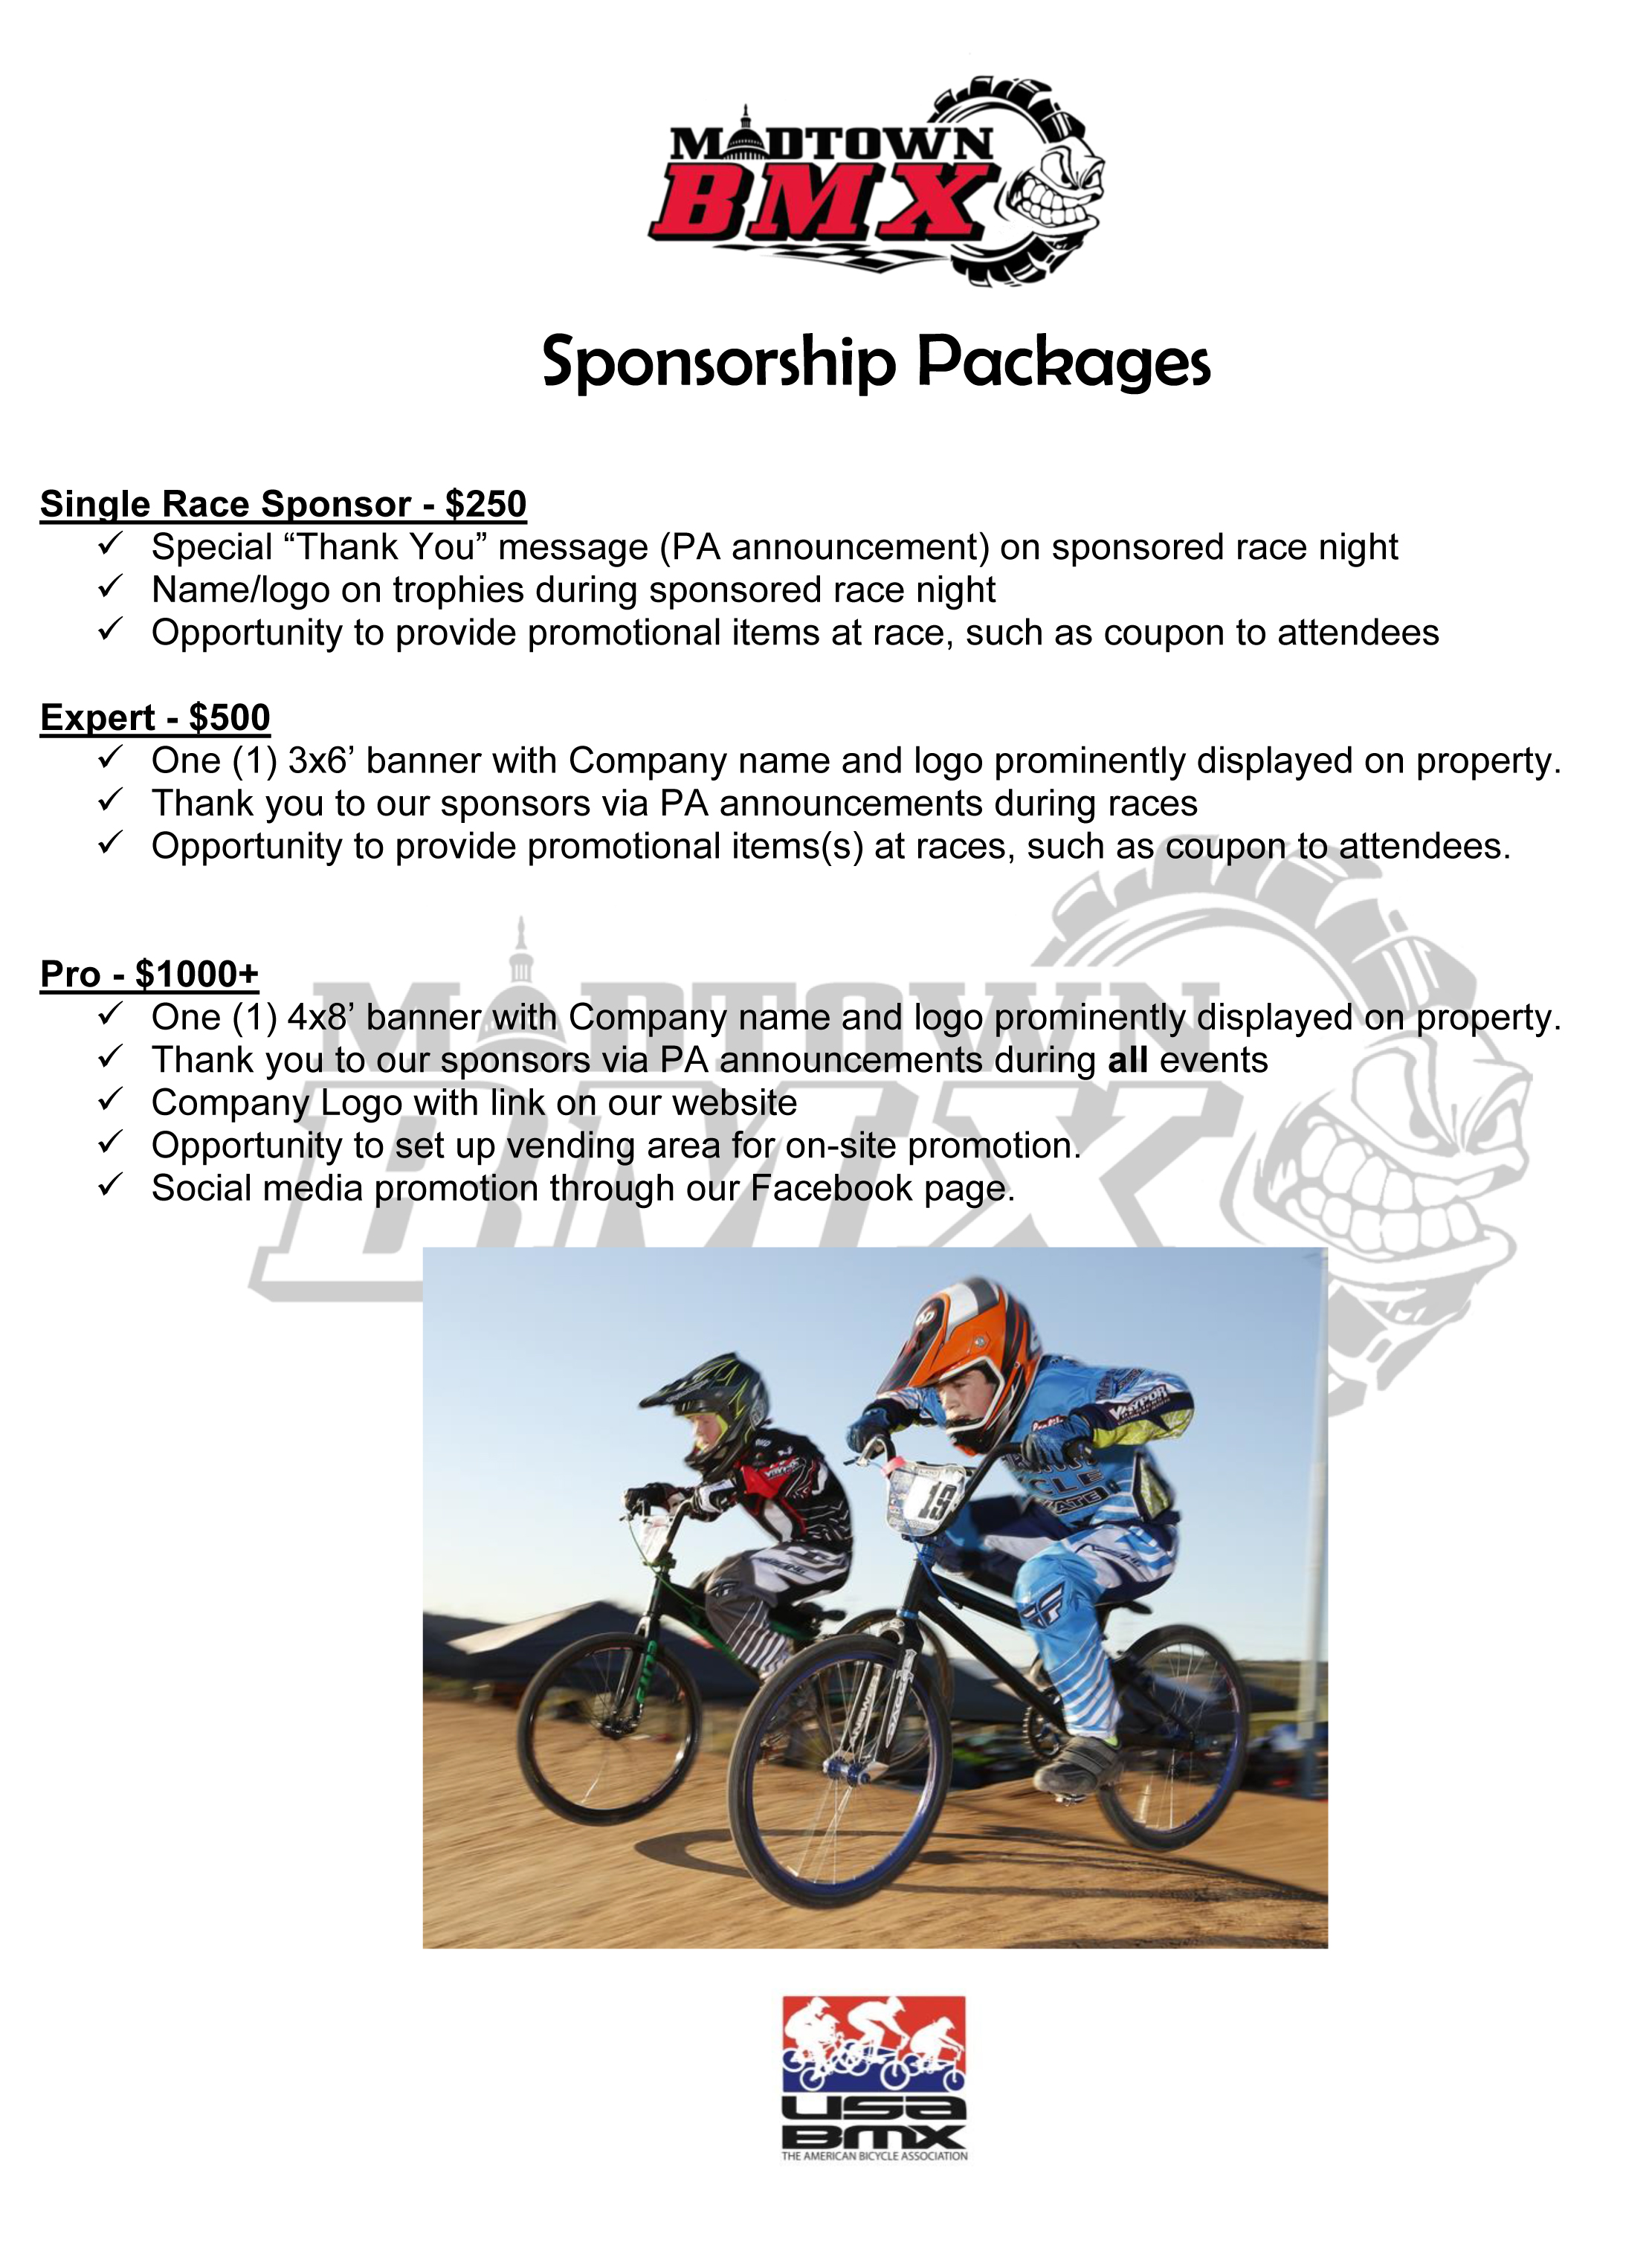 Madtown_bmx_sponsorship_program_-_new-2